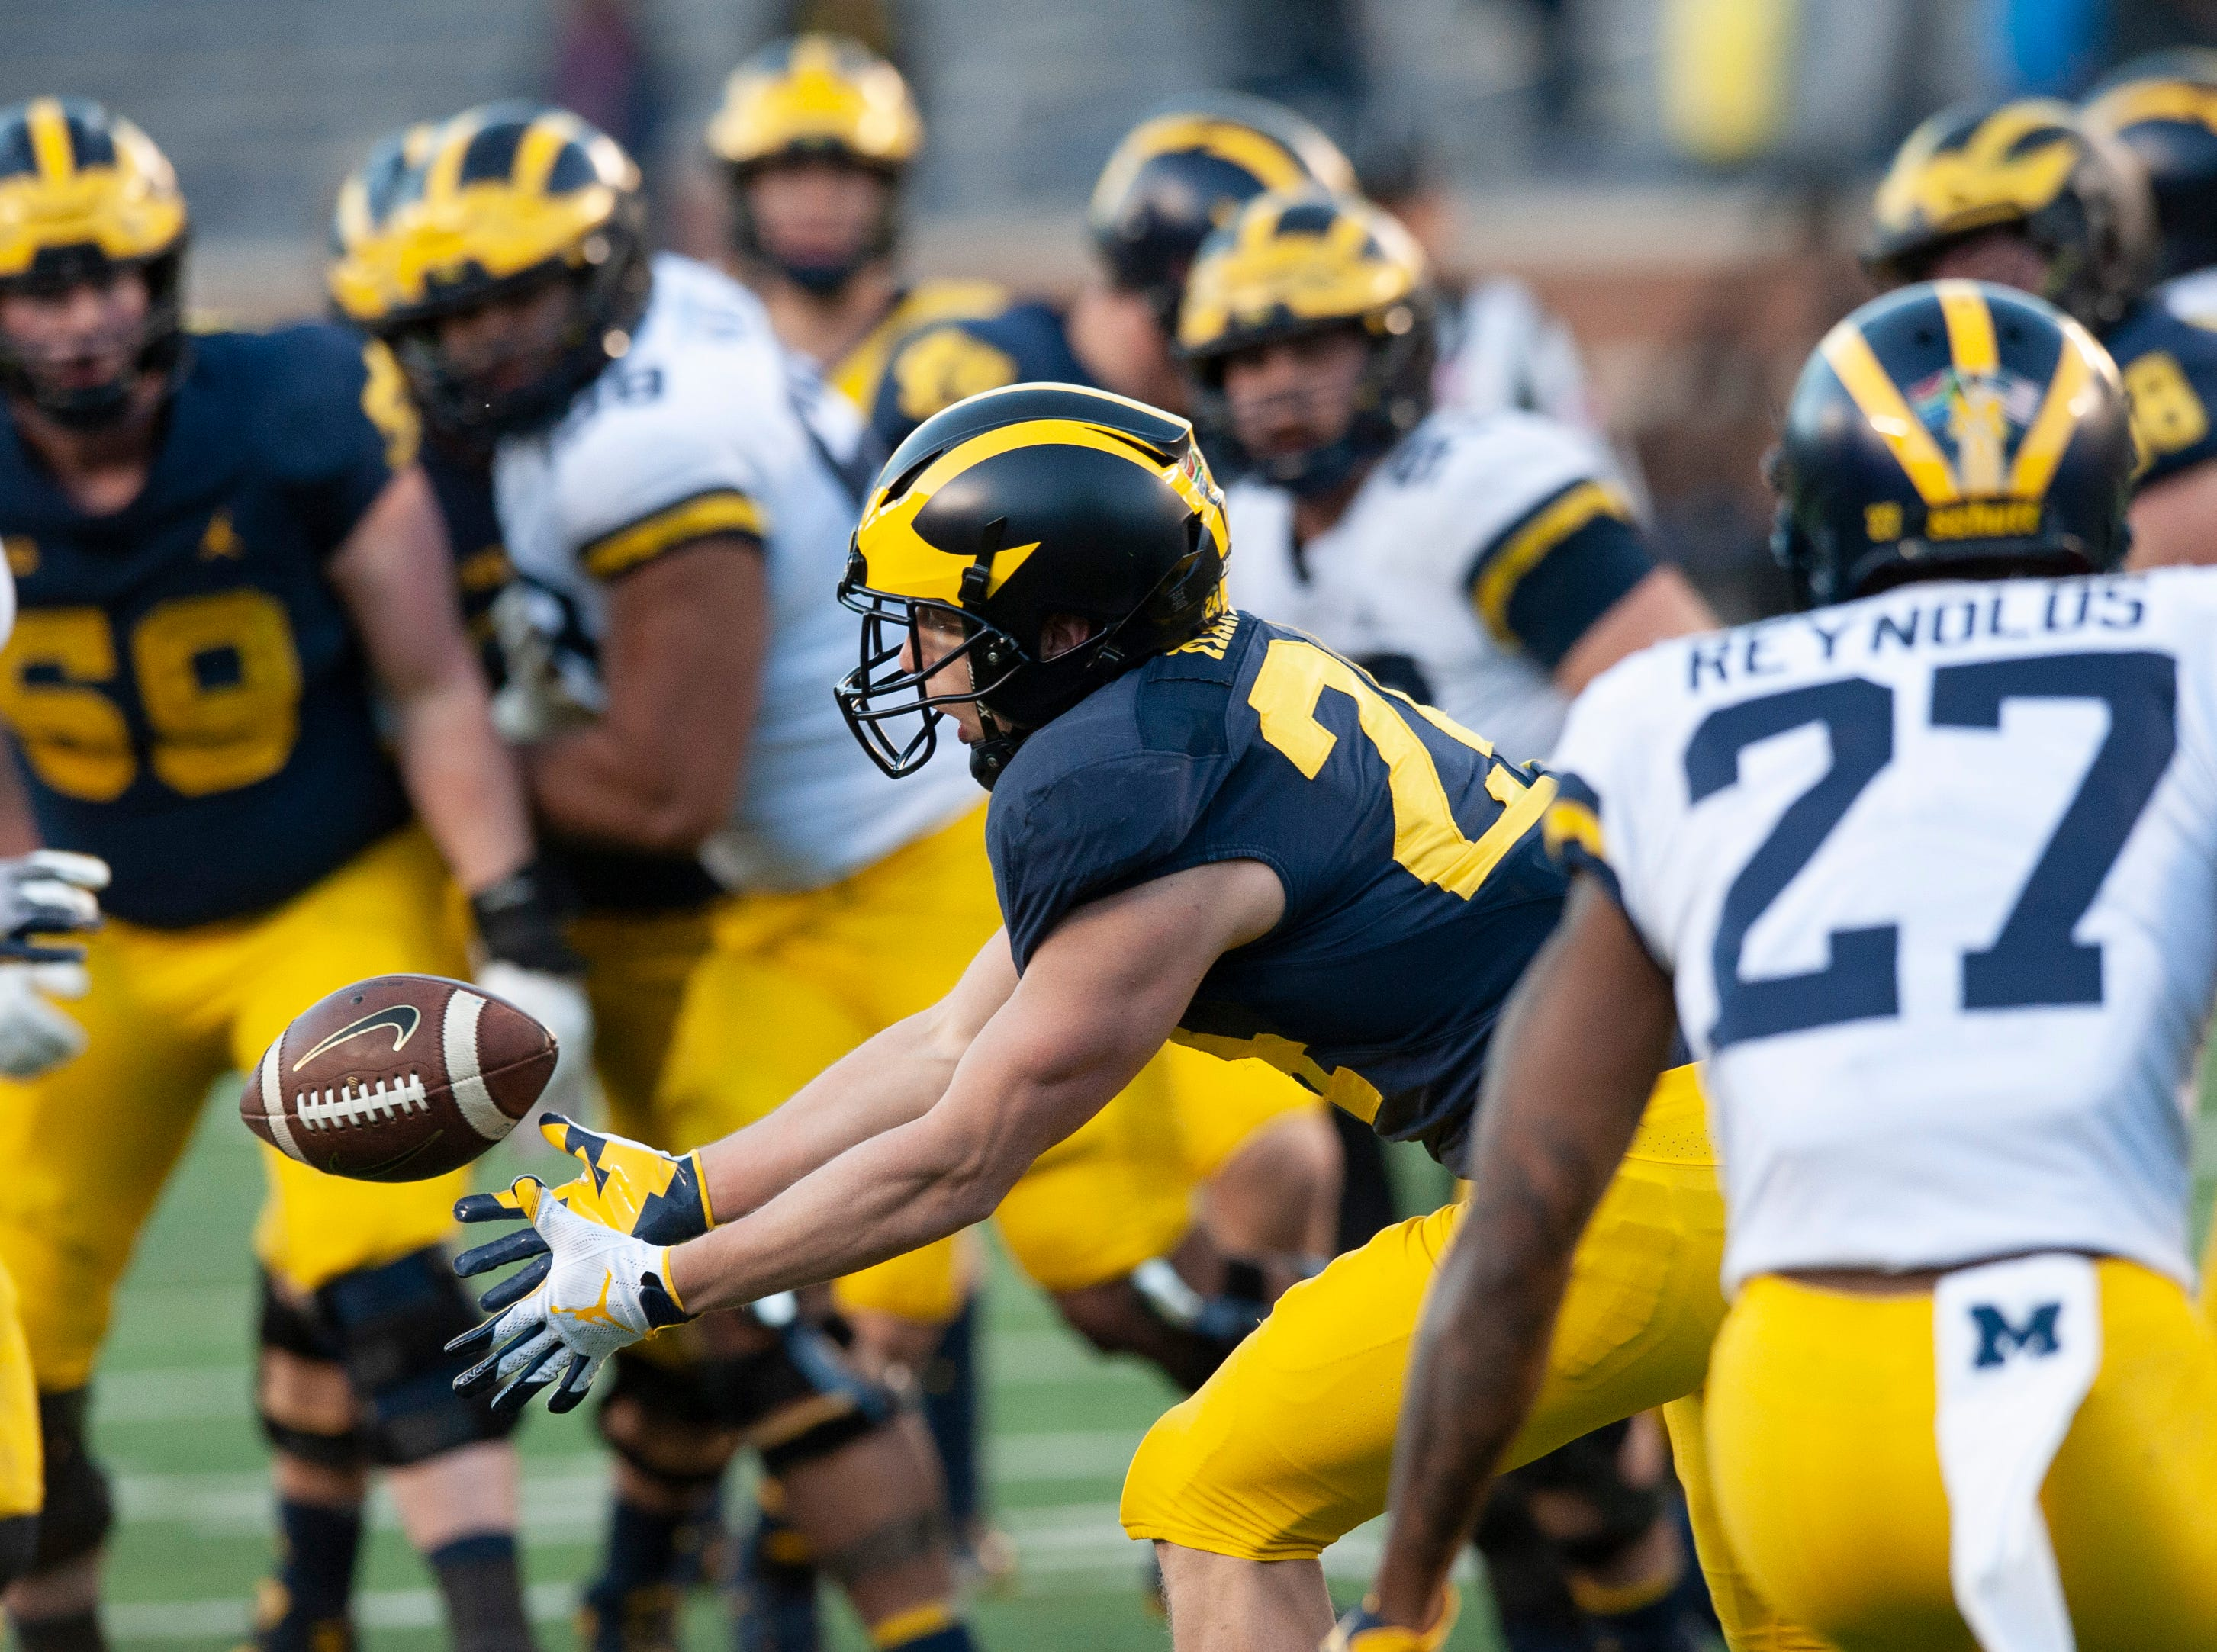 Michigan receiver Jake Martin can't quite pull in this pass during the scrimmage.